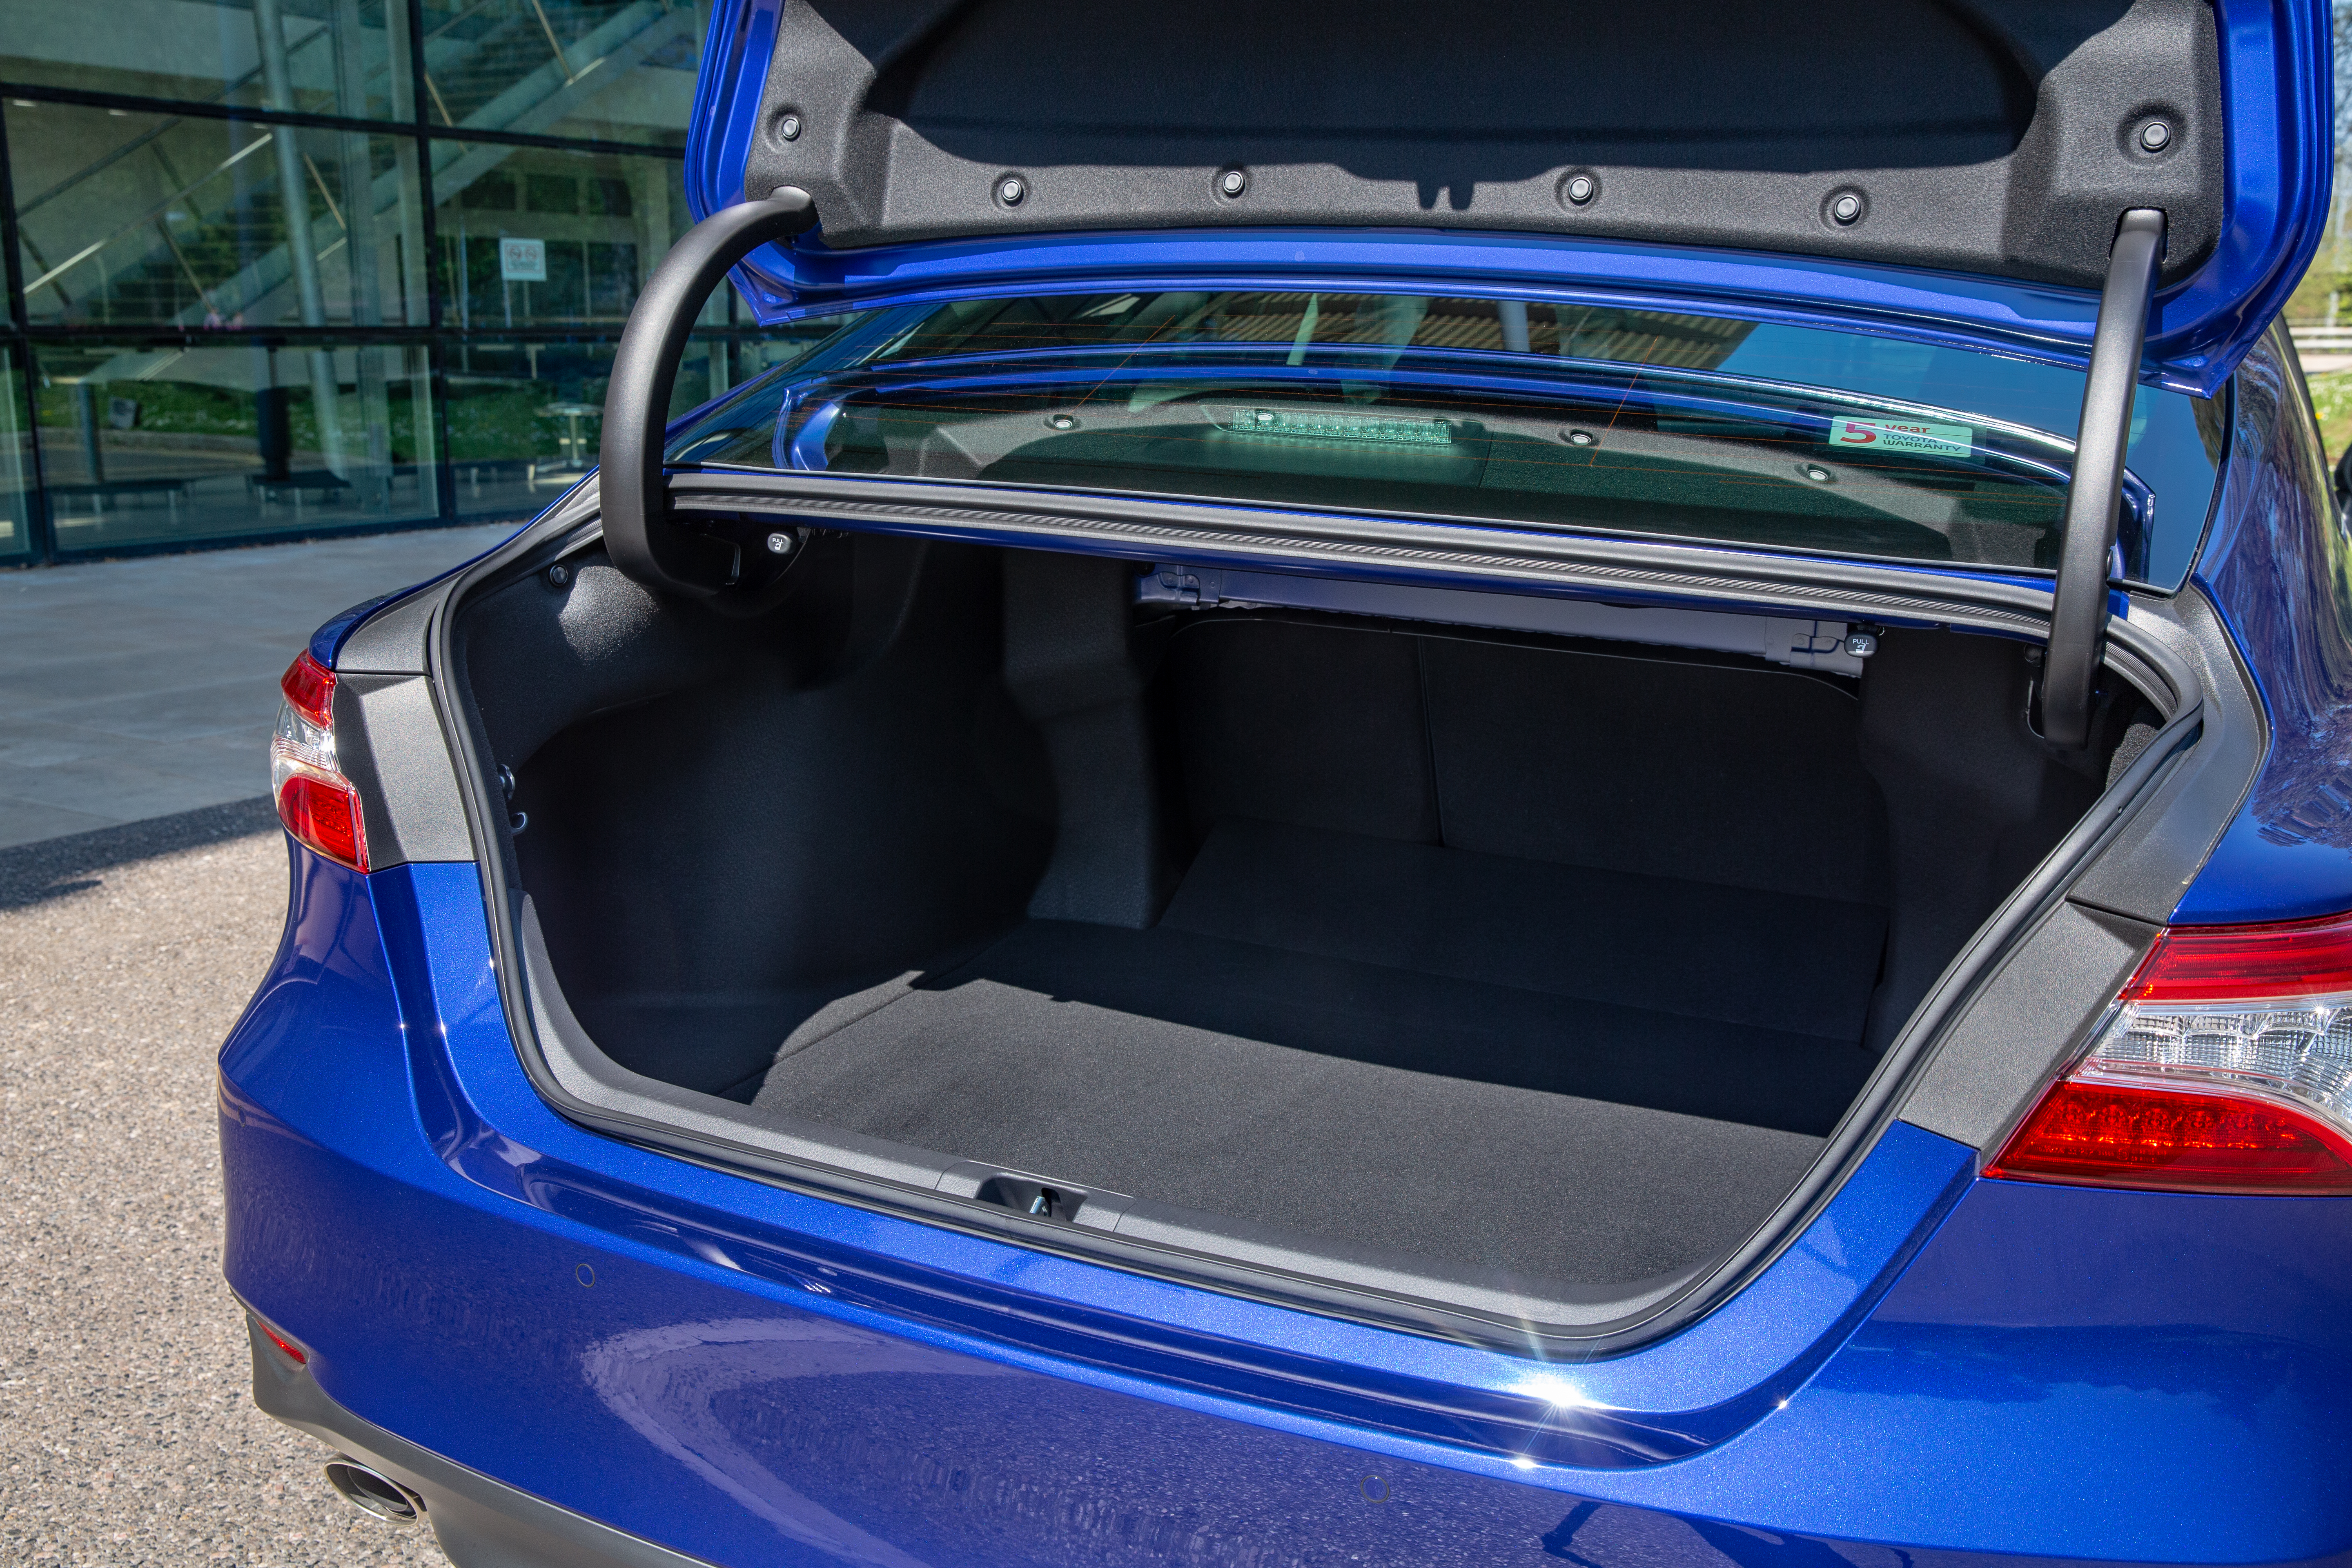 The Camry offers 524 litres of boot space